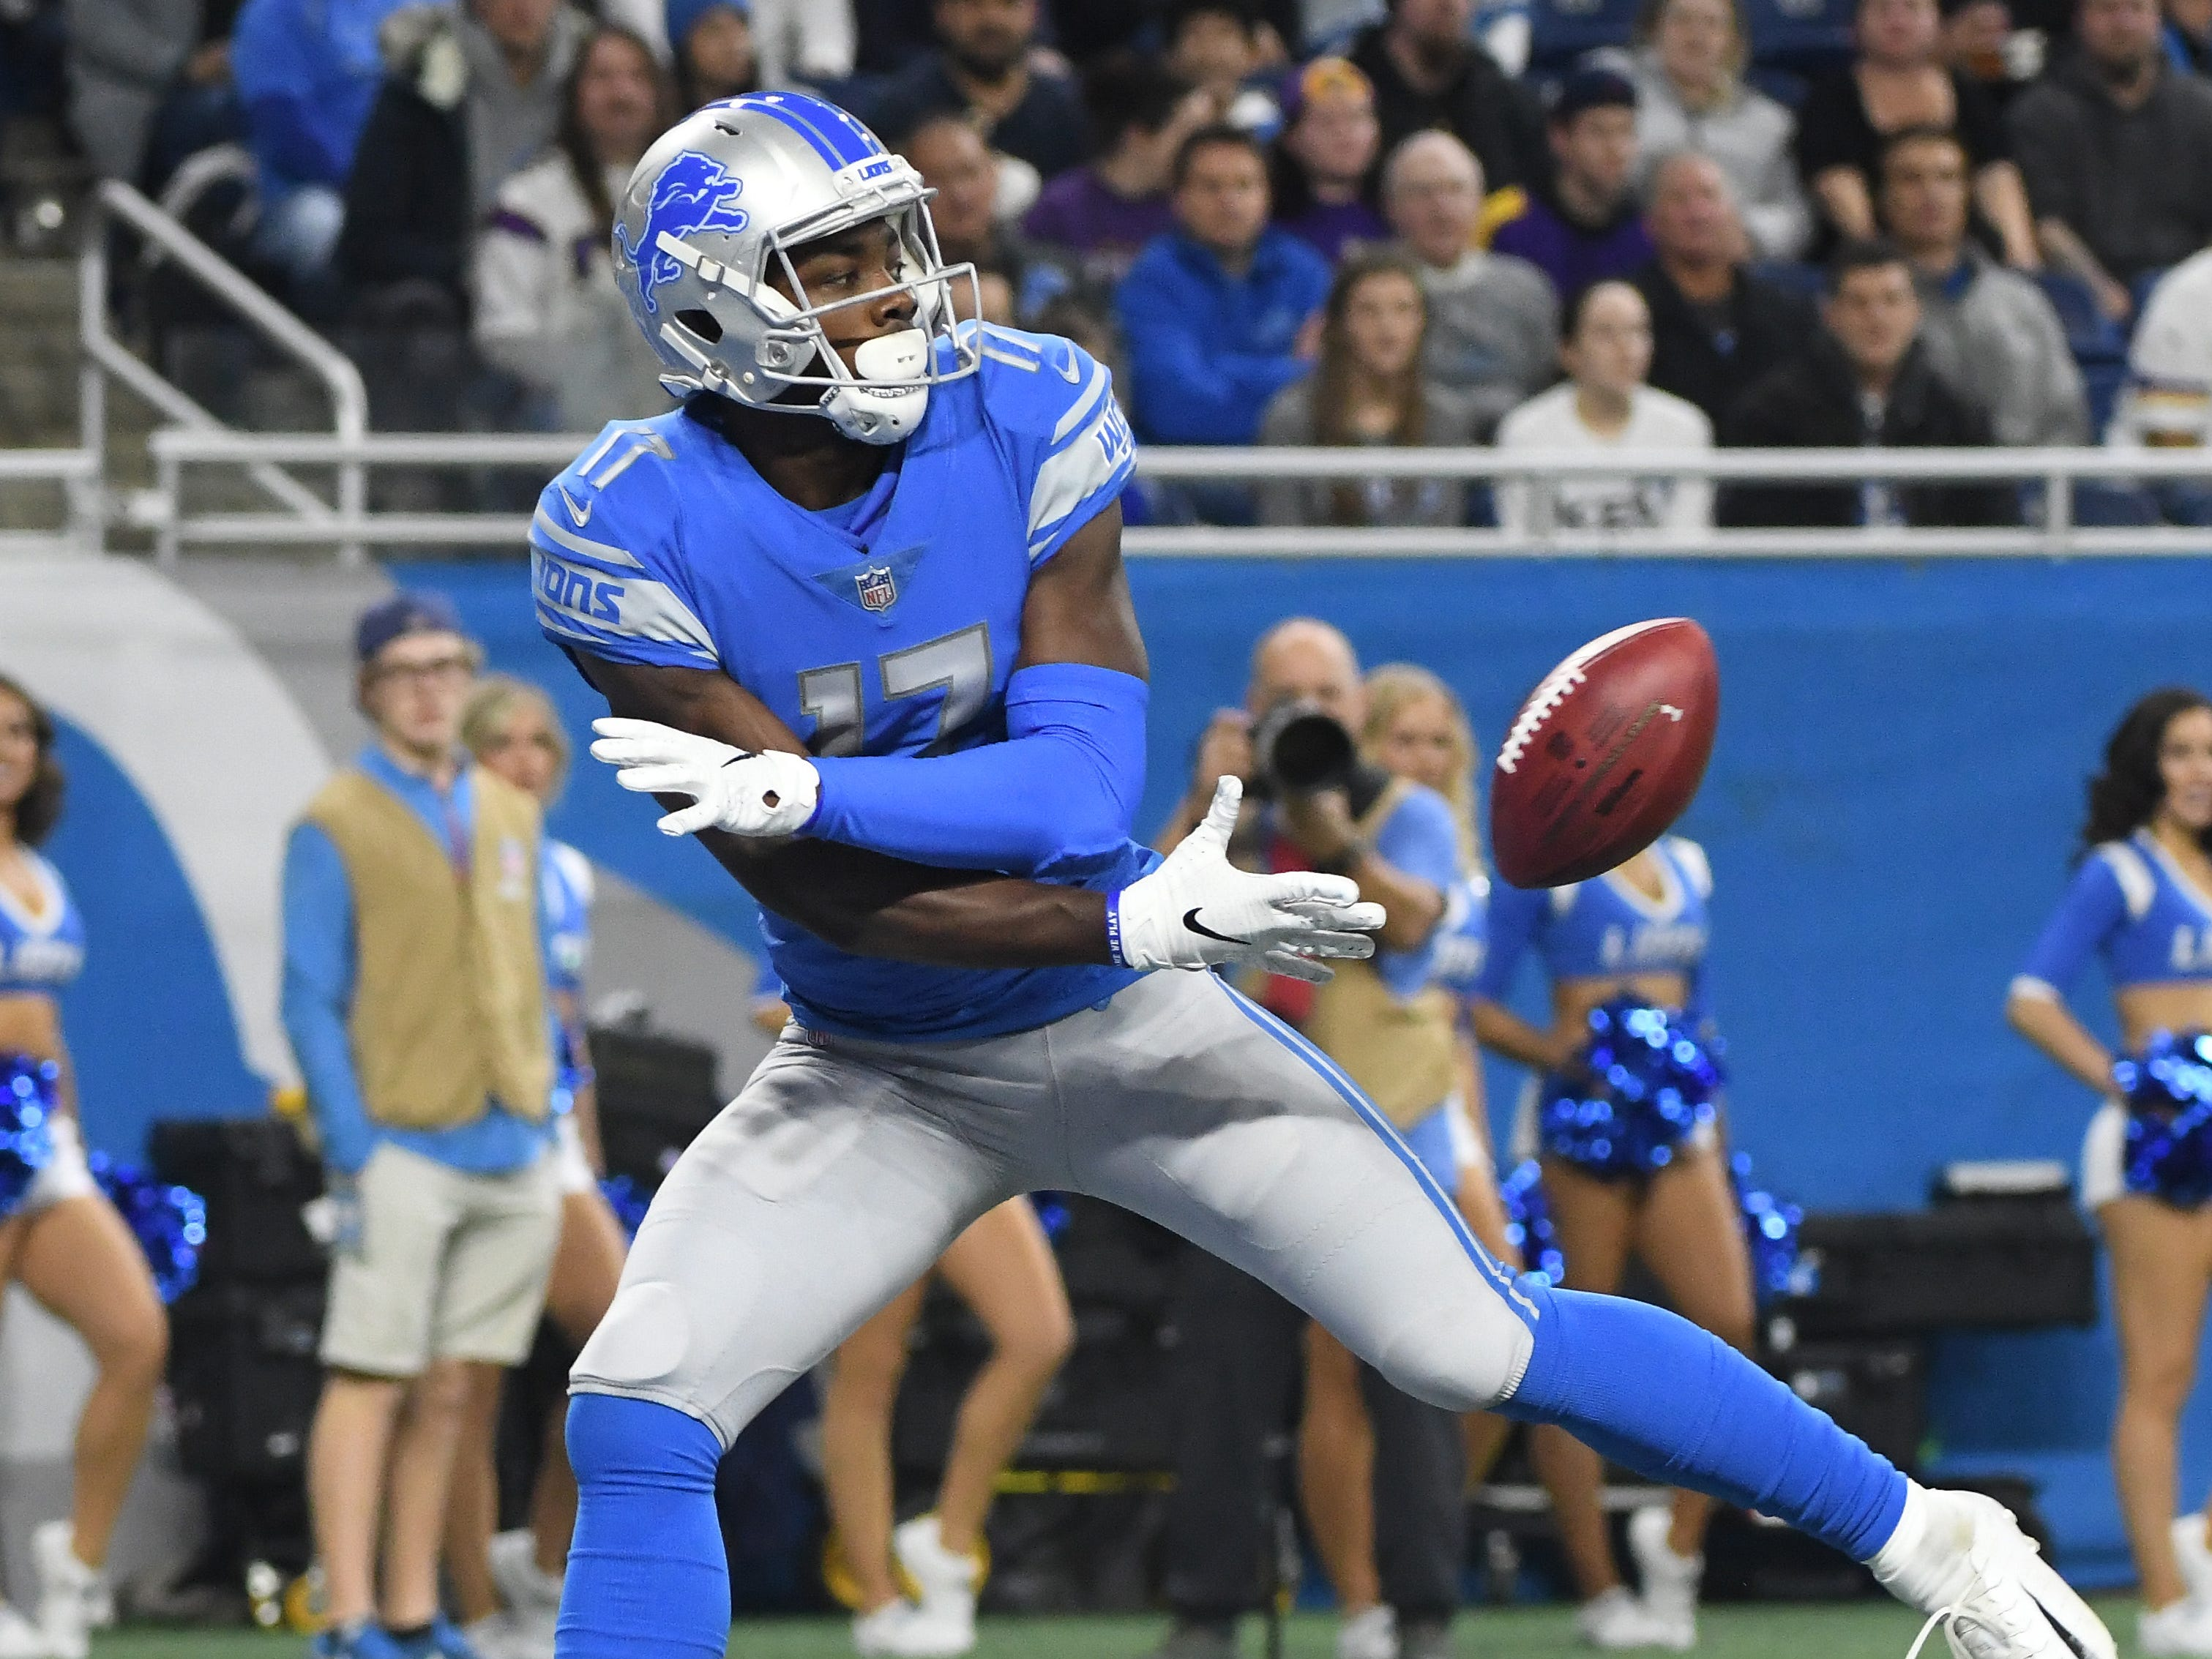 Lions wide receiver Andy Jones tosses back a Vikings punt to a teammate who downs the ball at the two yard line, giving Minnesota rough field position to start their offensive drive in the first quarter.